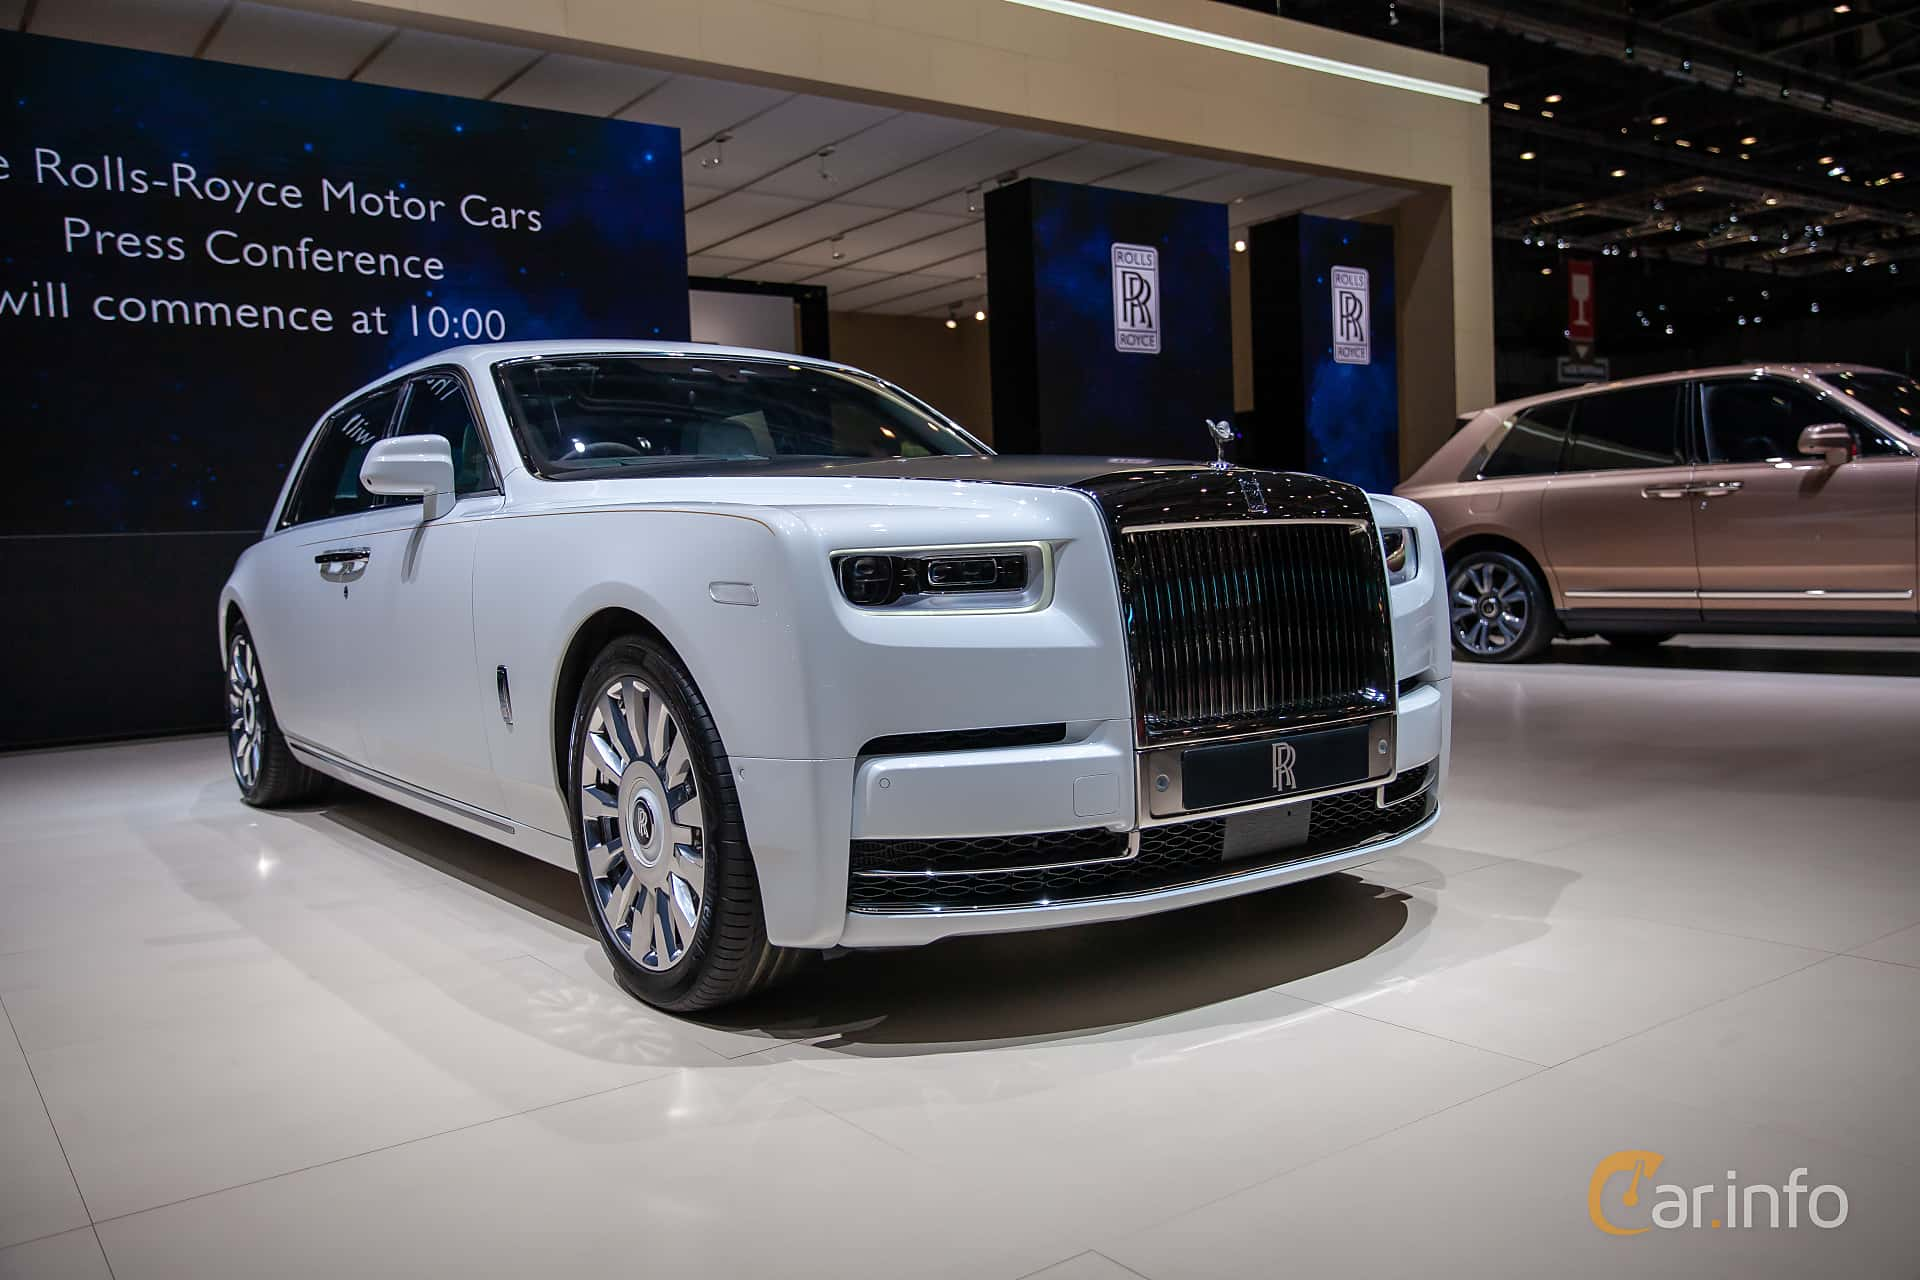 5 images of Rolls-Royce Phantom EWB 6 7 V12 Automatic, 571hp